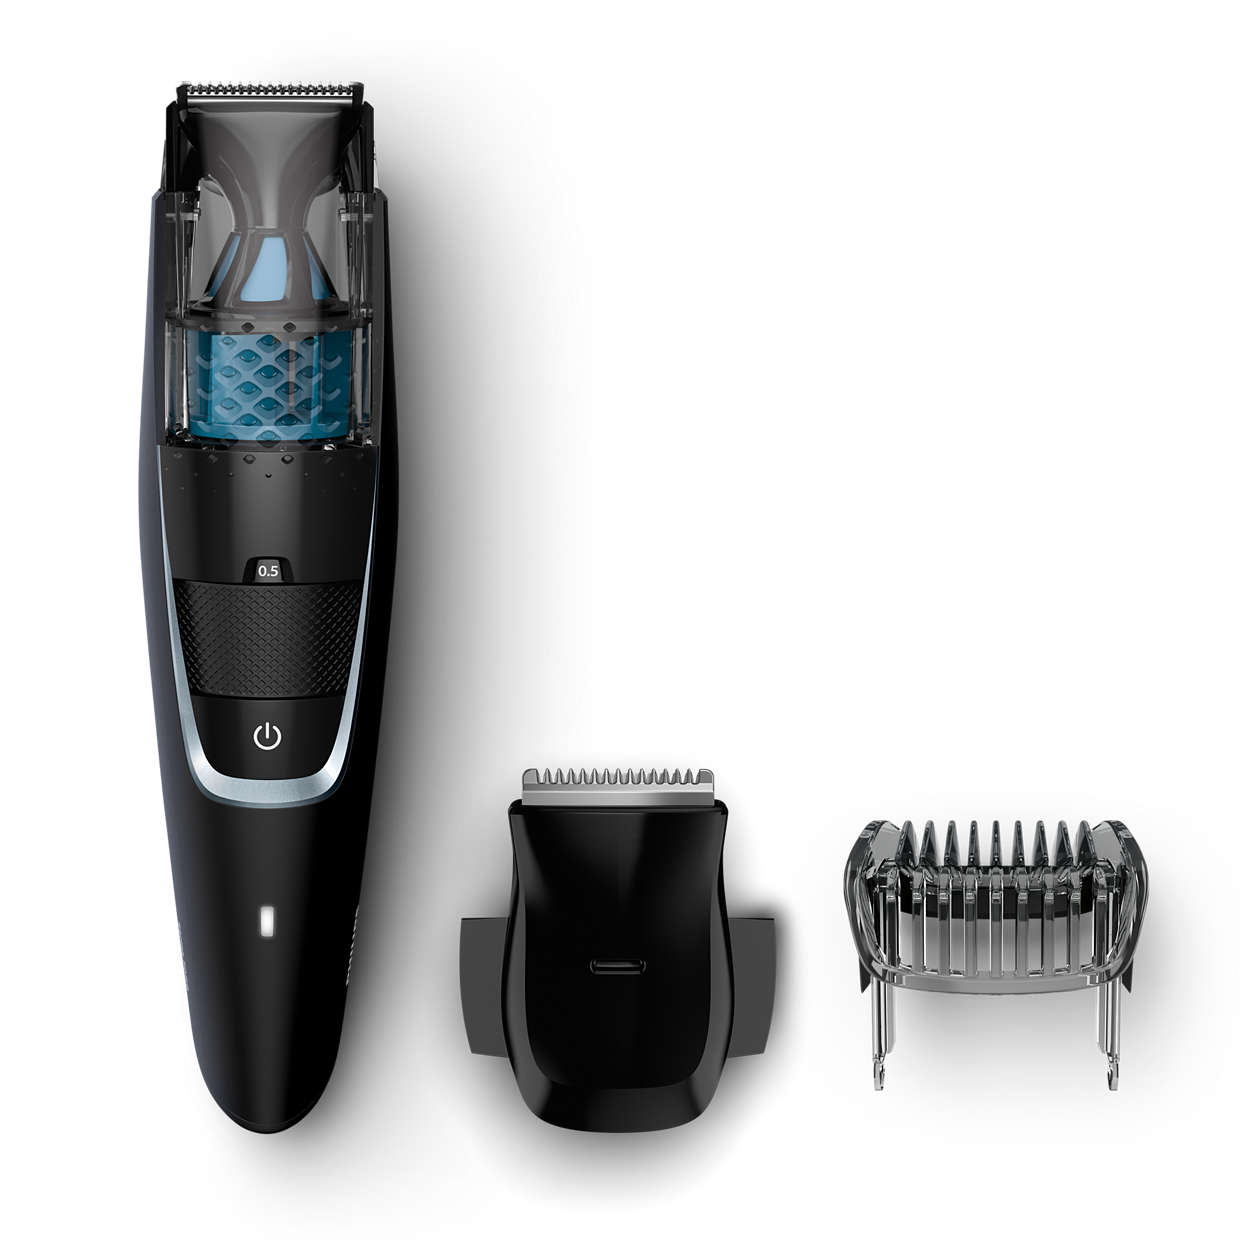 beardtrimmer series 7000 vacuum beard trimmer bt7201 15. Black Bedroom Furniture Sets. Home Design Ideas